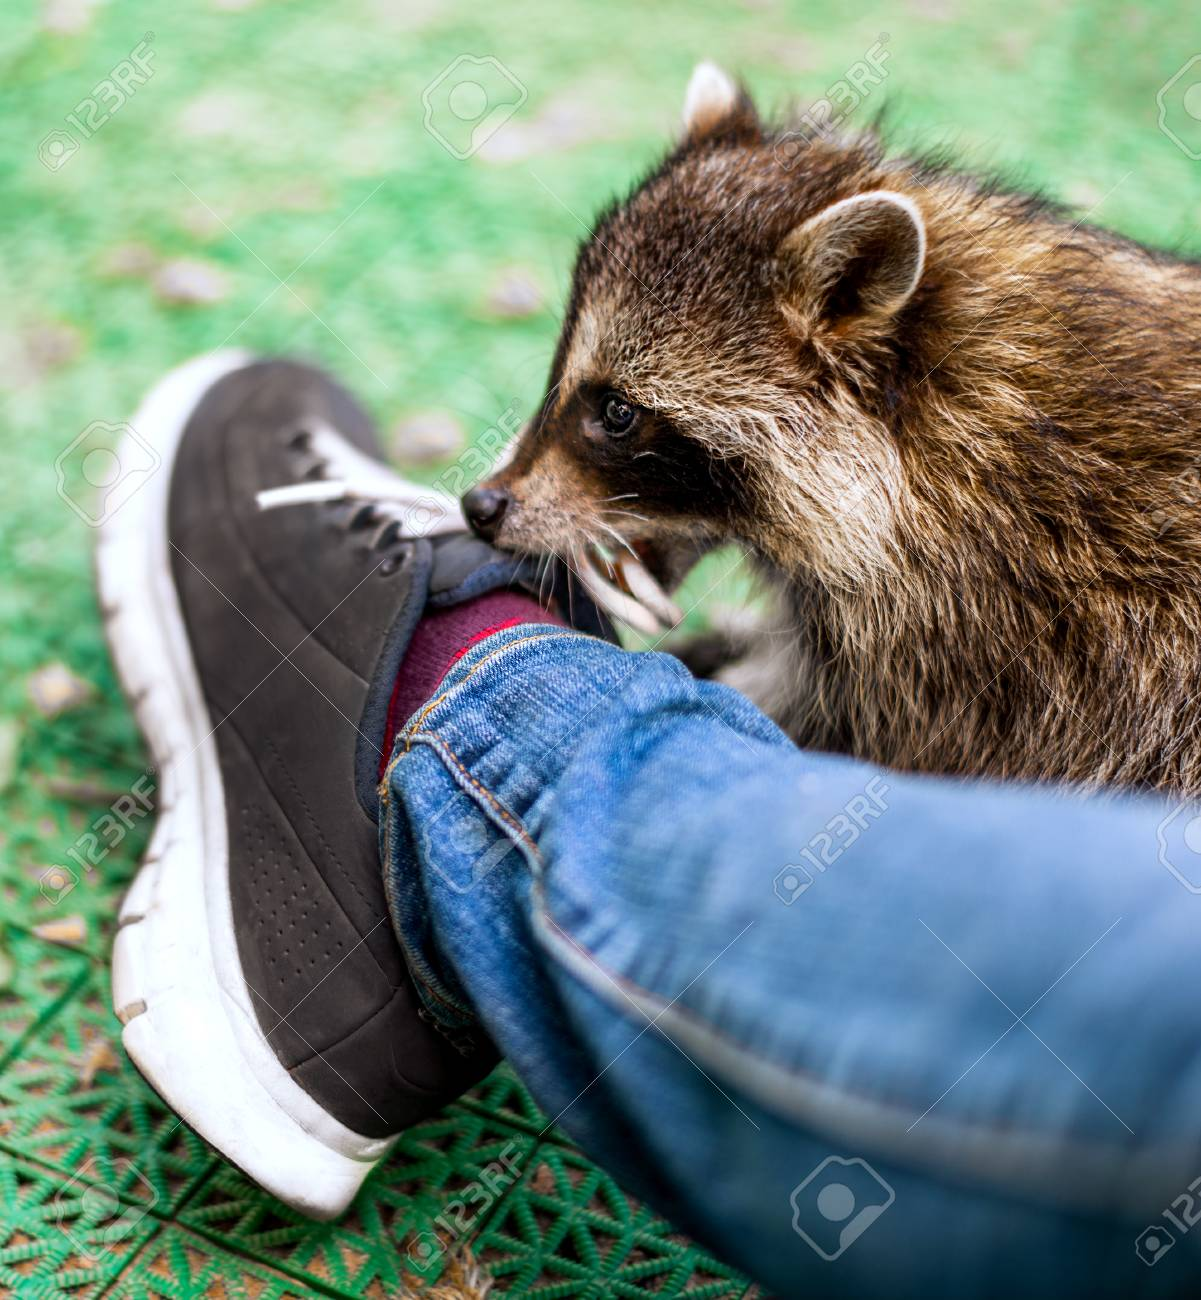 b94c003325e51 Baby cub raccoon indoors playing with laces on shoes, nibbles